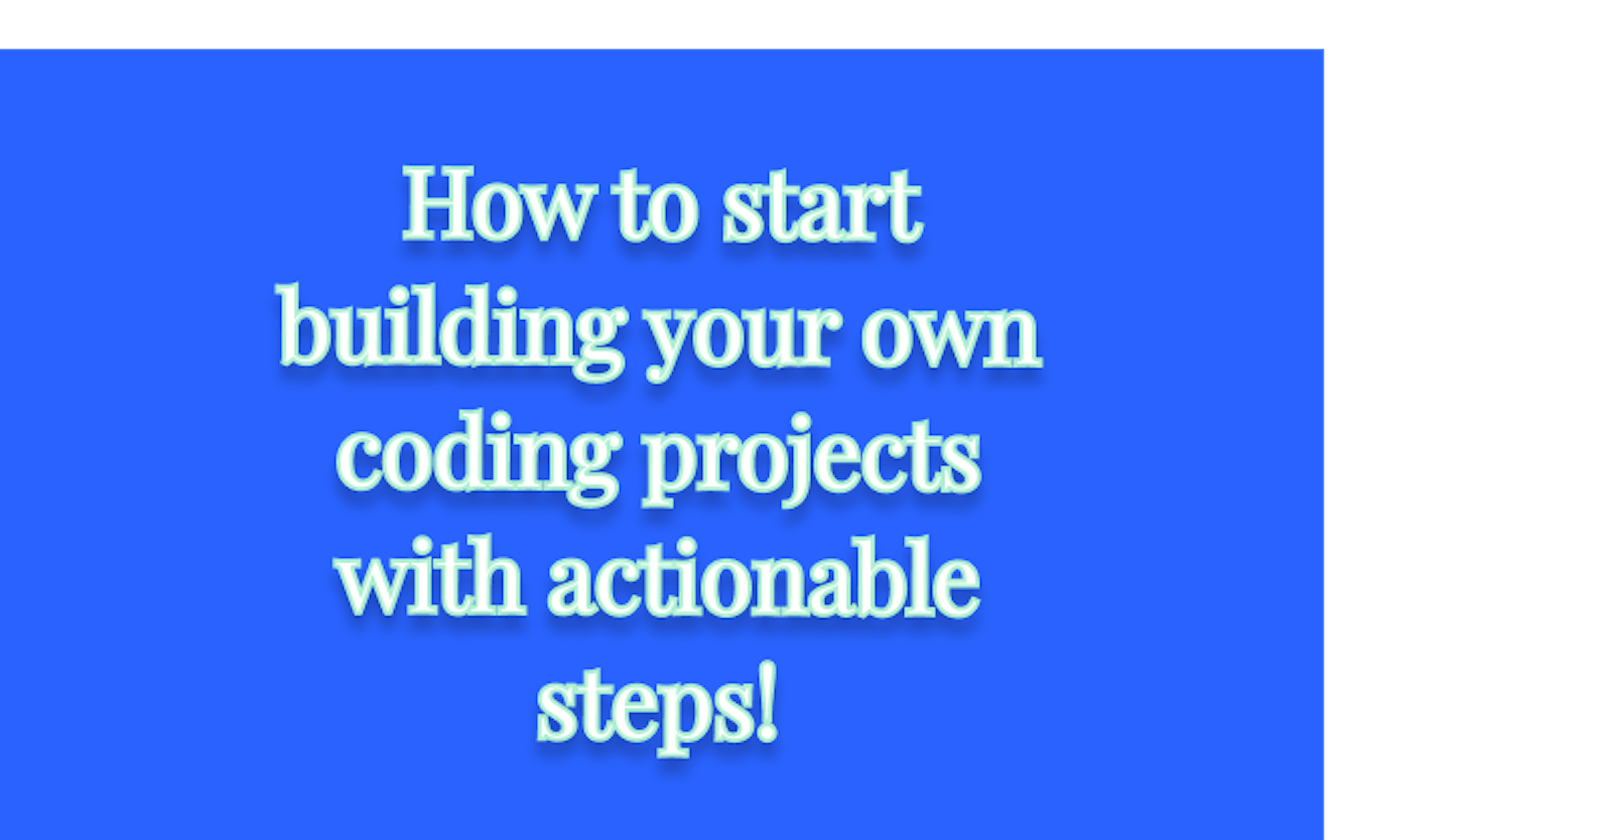 How to start building your own coding projects with actionable steps!